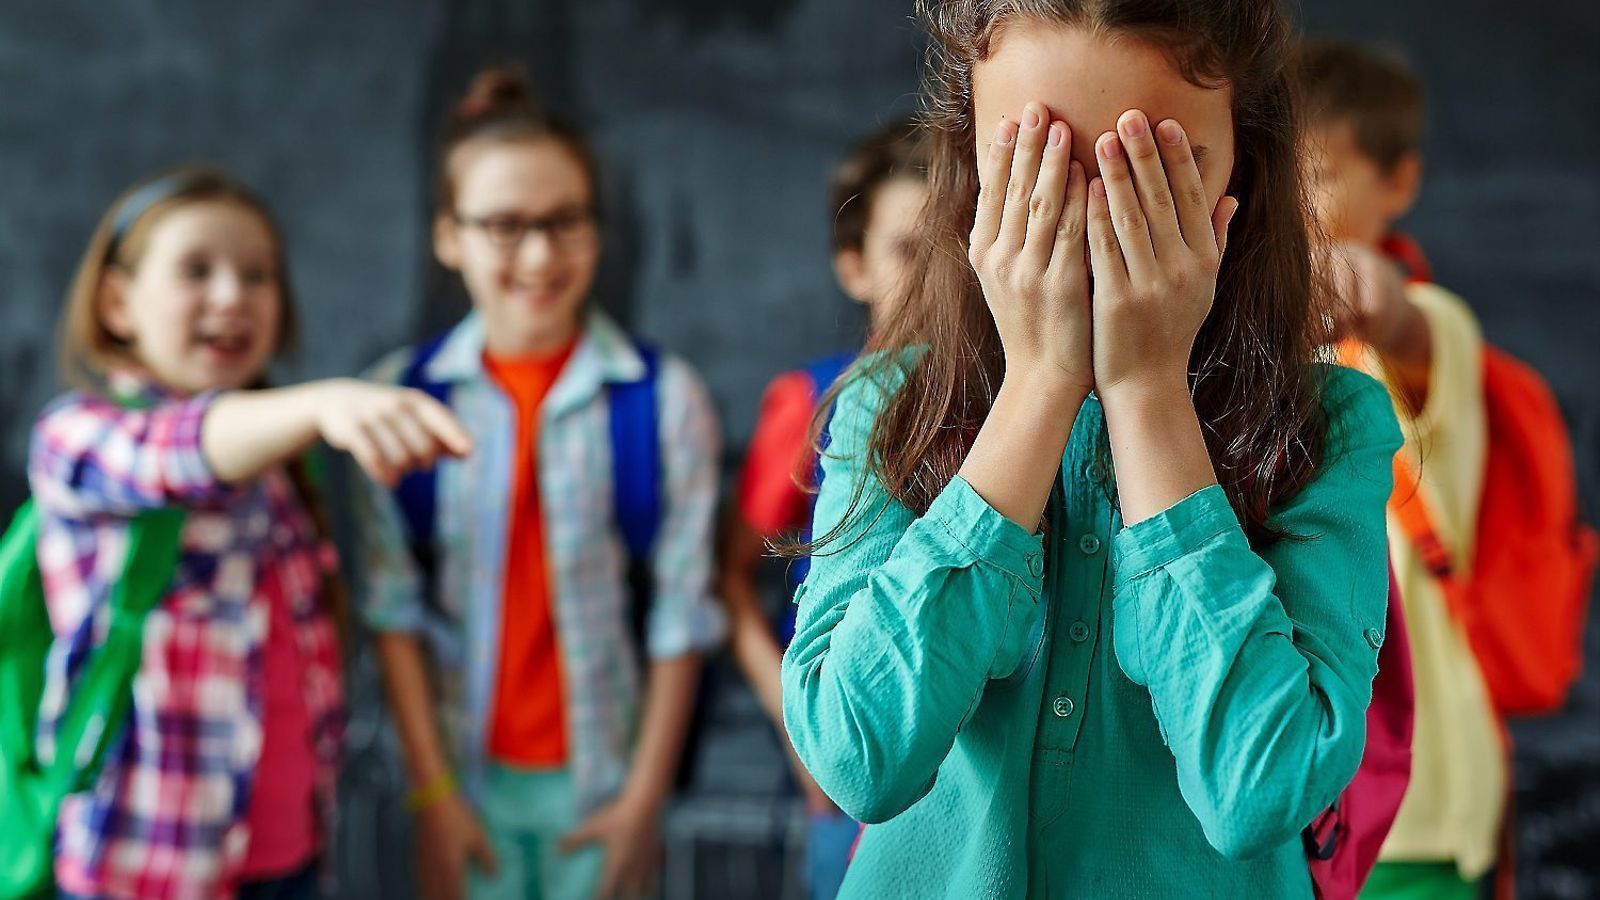 Dolor a l'aula. 'Stop bullying'